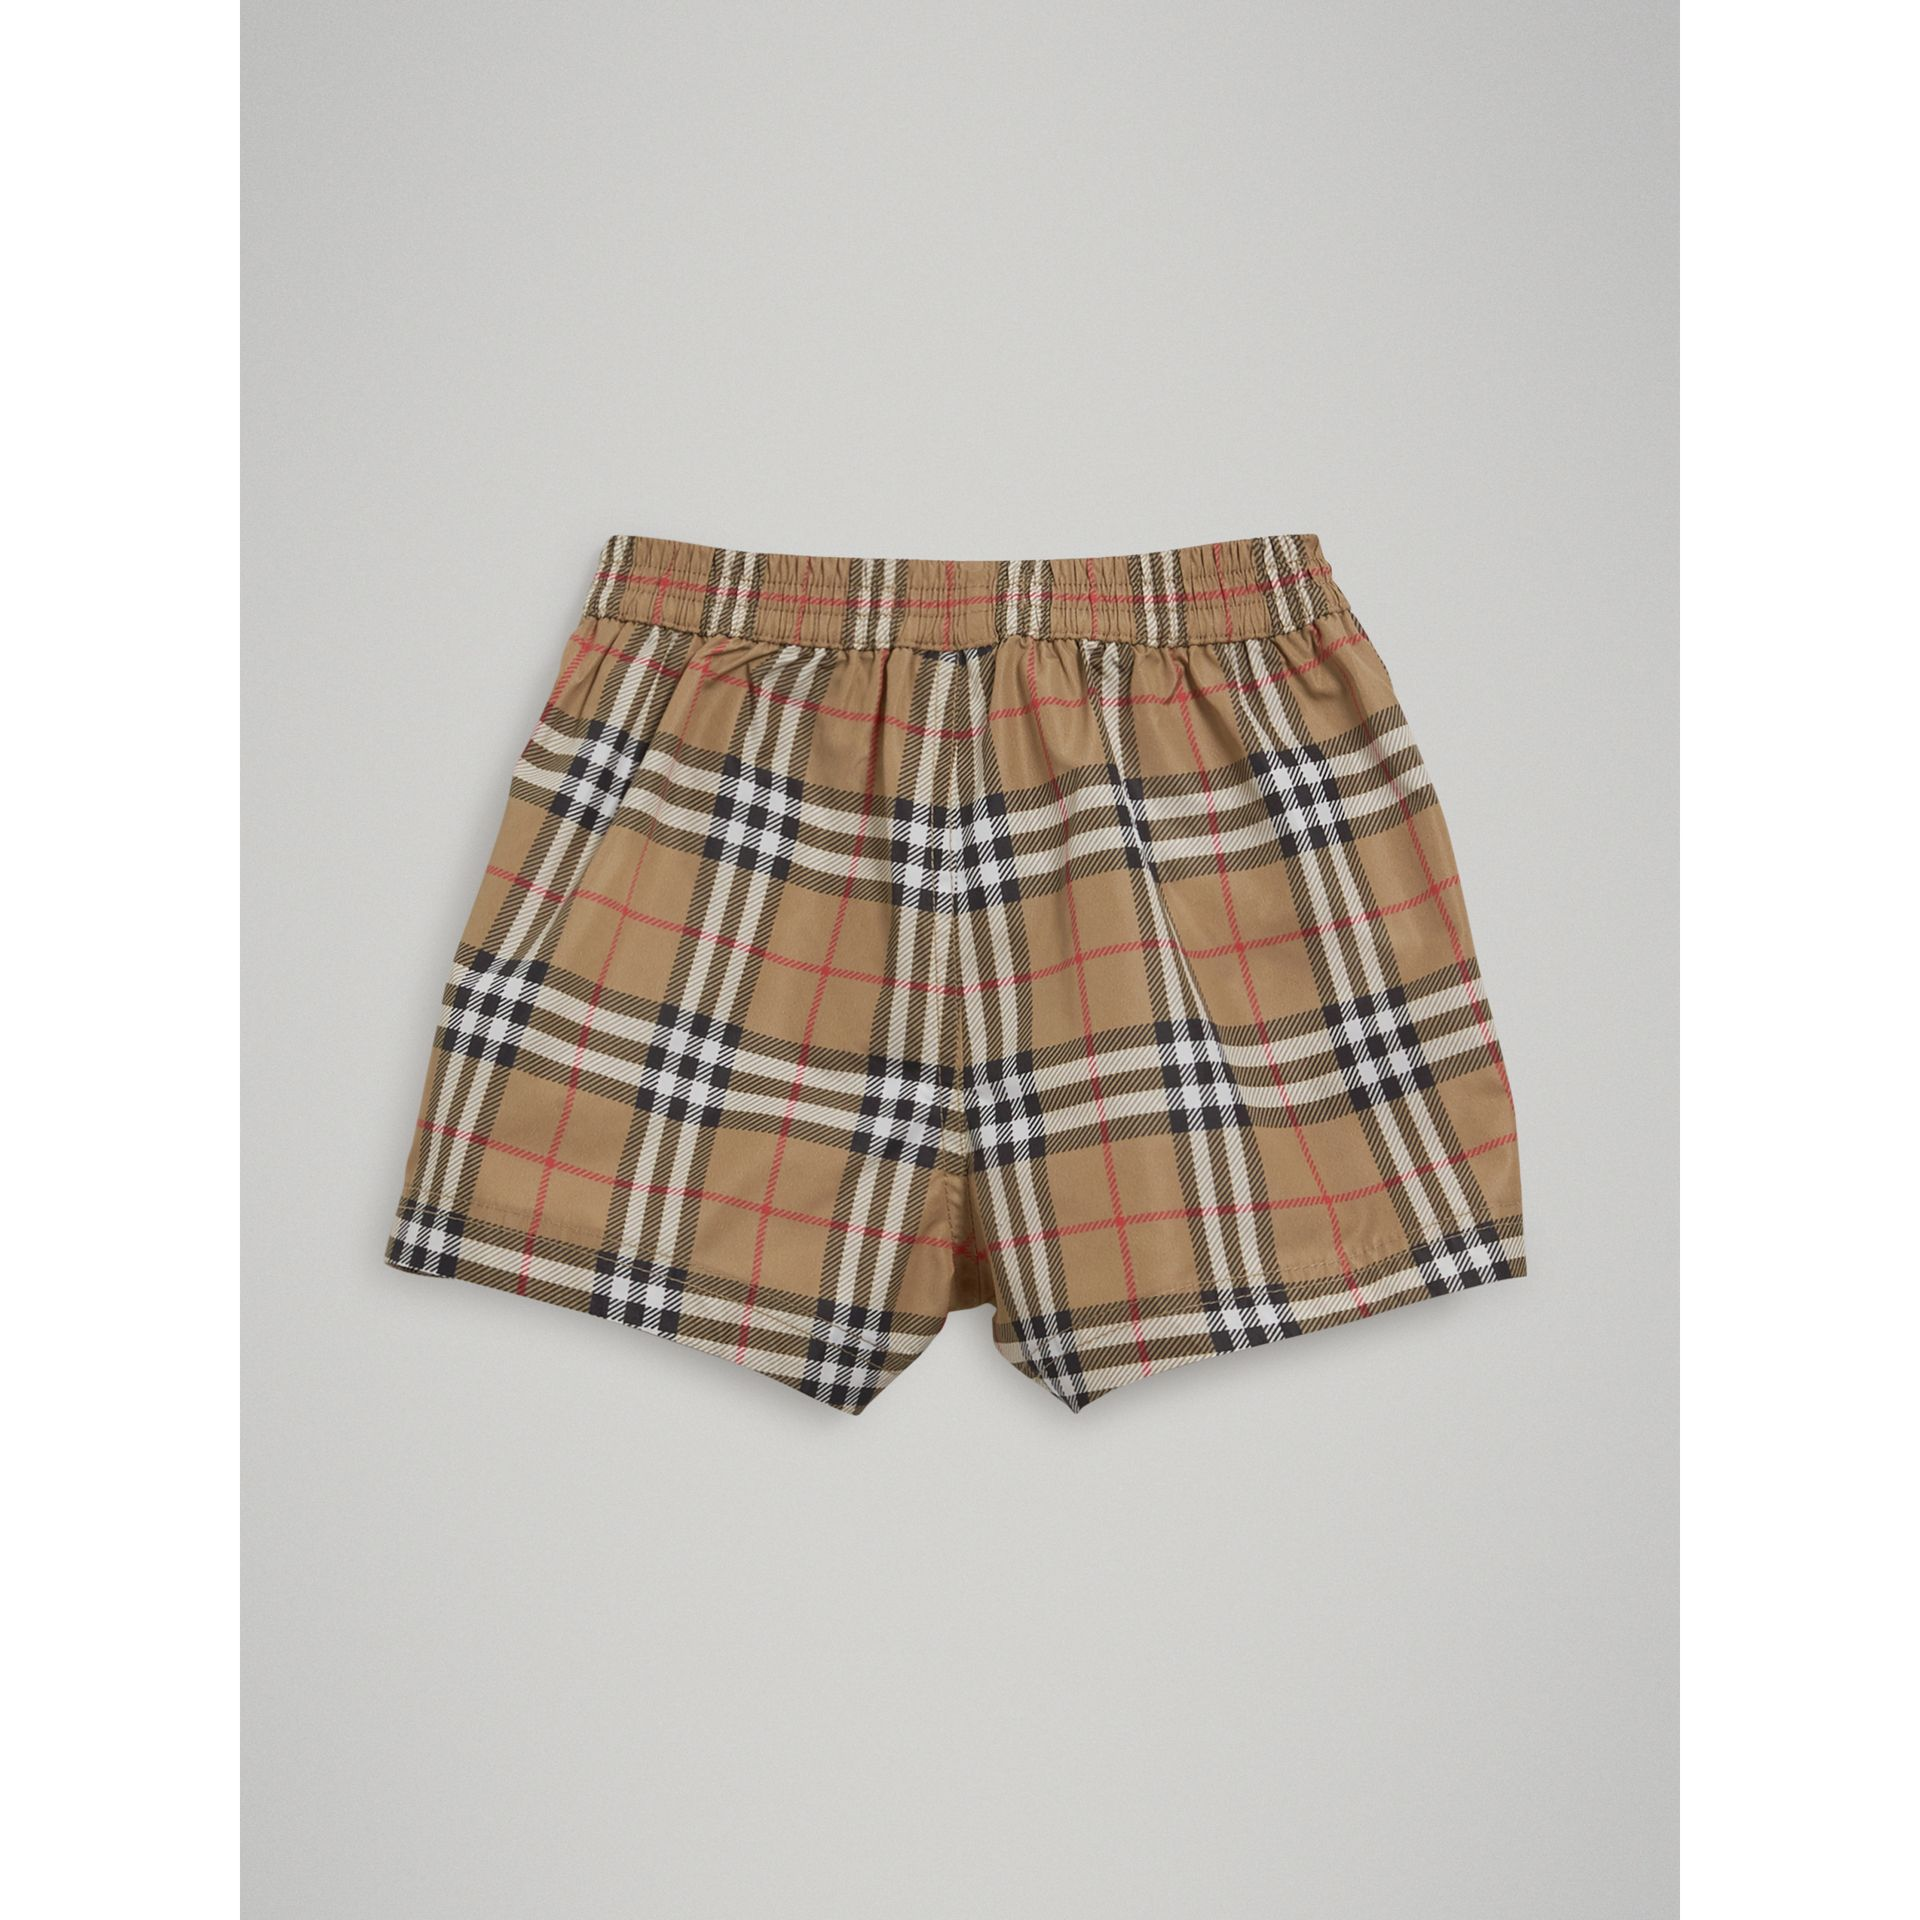 Short de bain à motif check (Camel) - Enfant | Burberry Canada - photo de la galerie 3